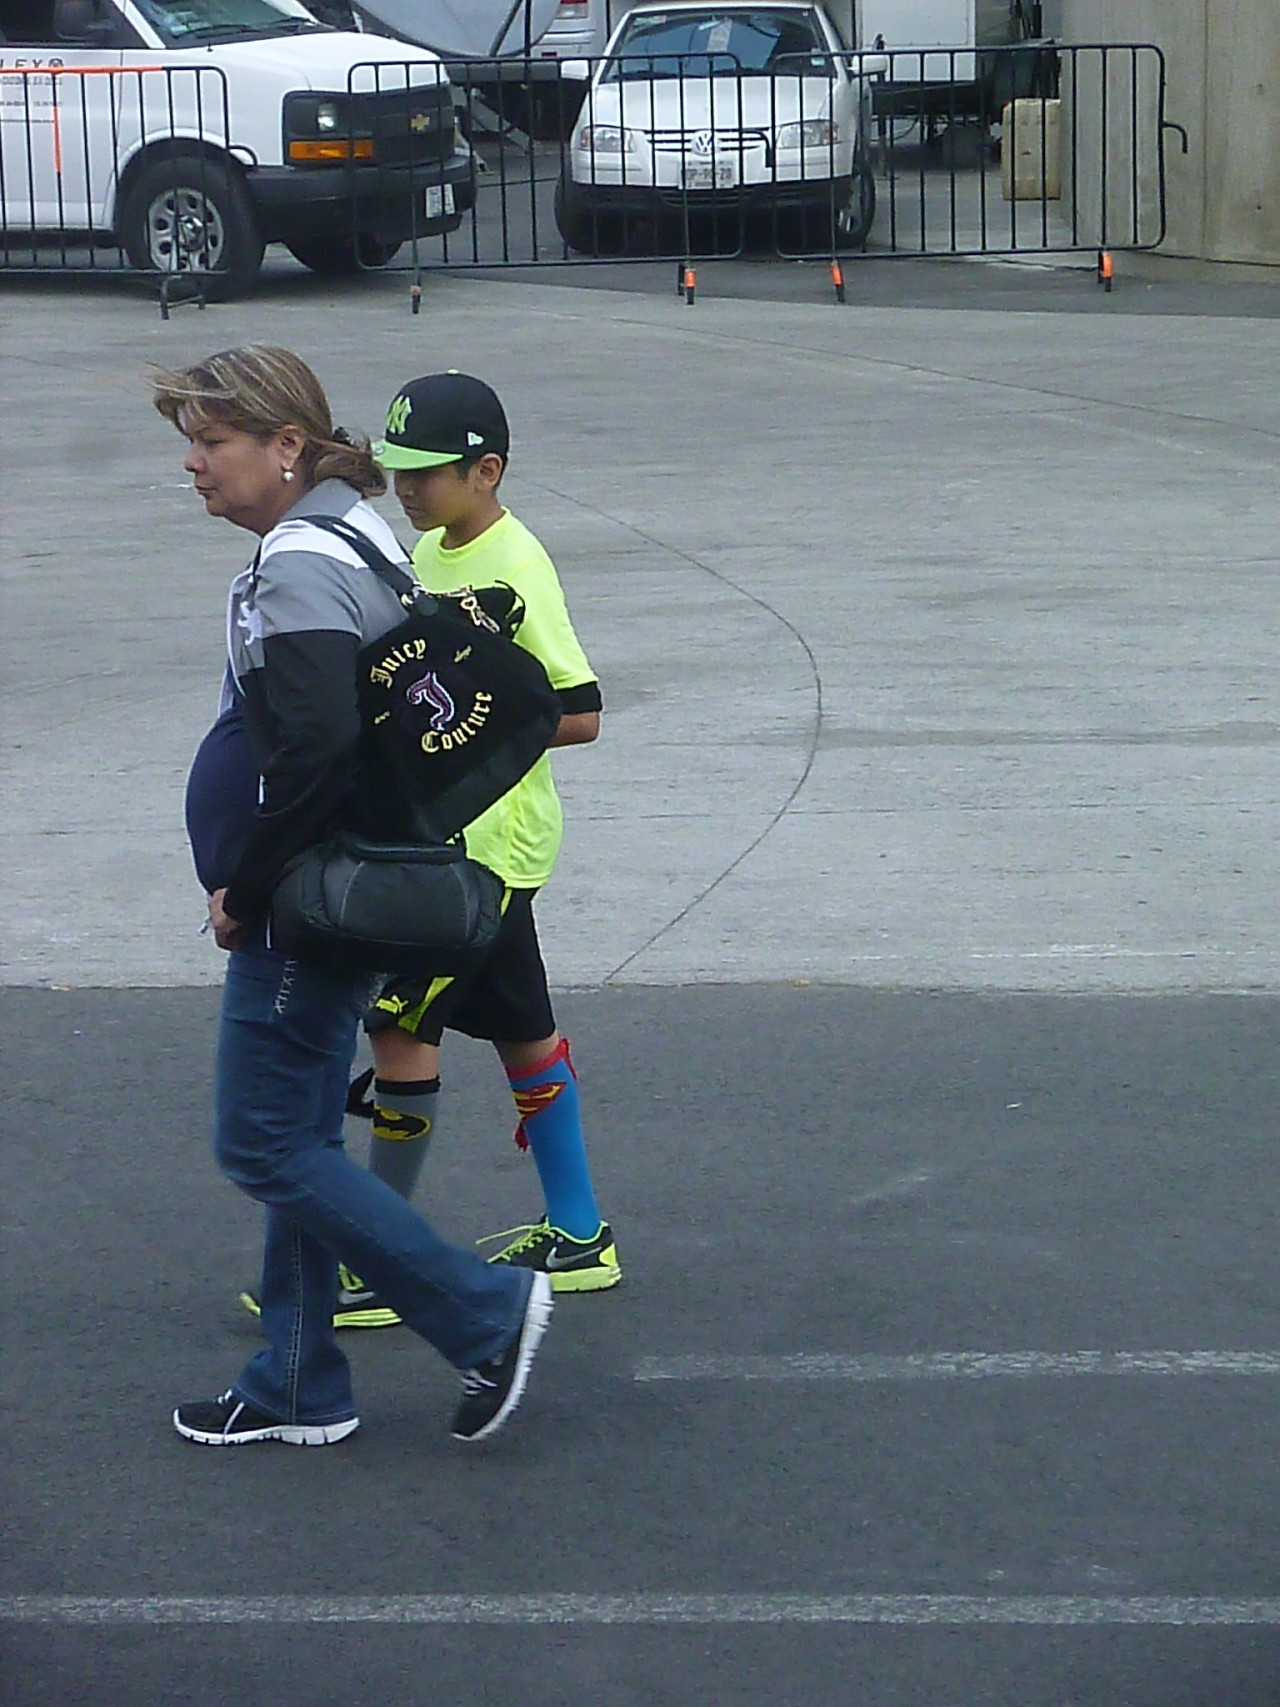 Seen outside Foro Sol after the Diablos Rojos game on Sunday: kid rockin' the black and fluorescent yellow look, with a pair of truly awesome socks.